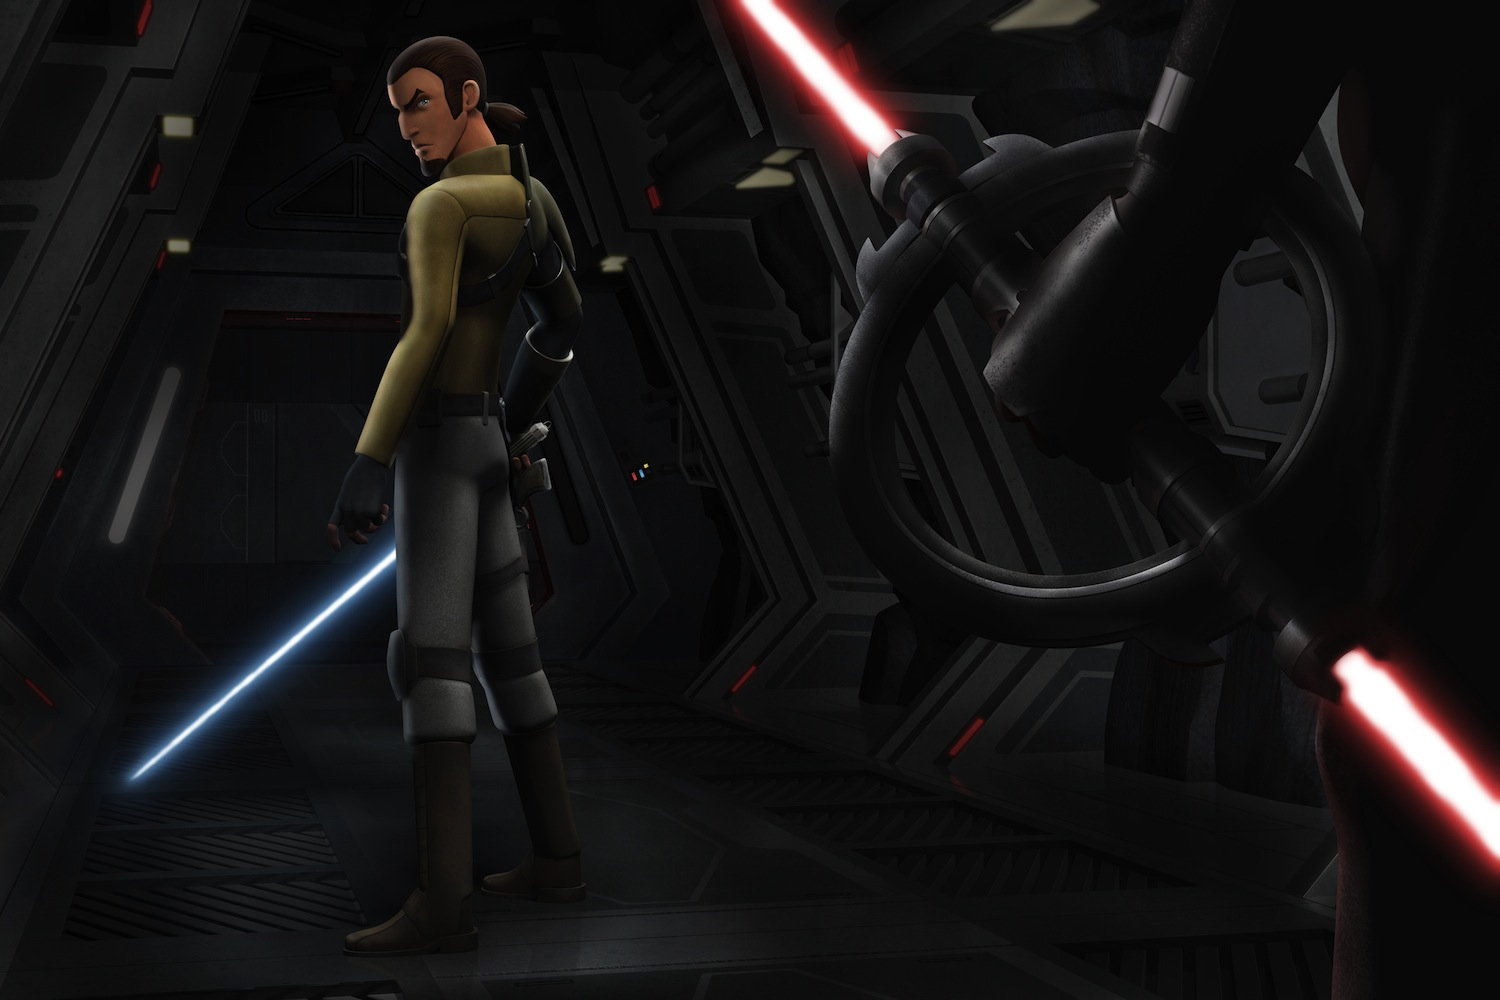 `Star Wars Rebels`: Kanan encounters the Inquisitor. `Star Wars Rebels` is scheduled to premiere this fall as a one-hour special telecast on Disney Channel. (Lucas Film/Disney photo)